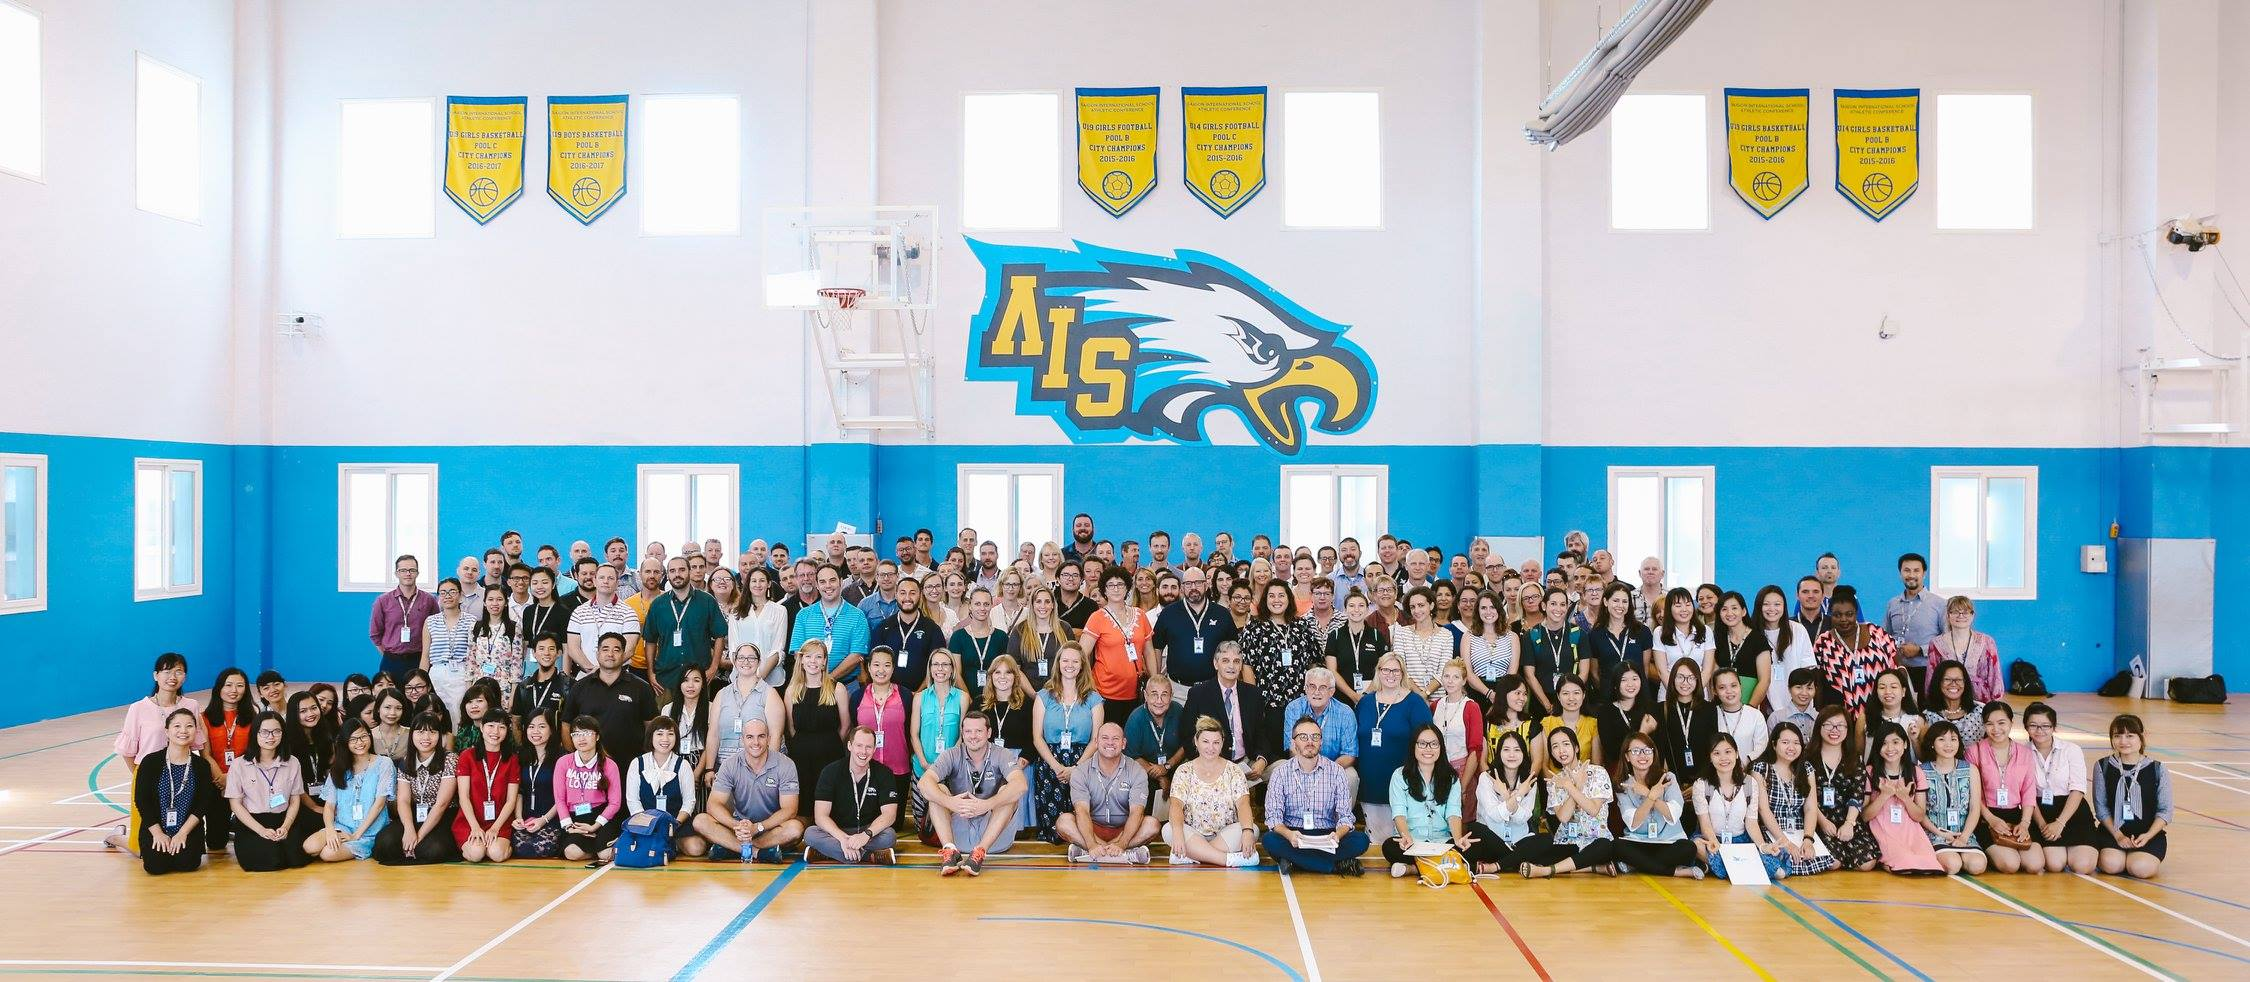 A warm welcome from the 2017-18 staff